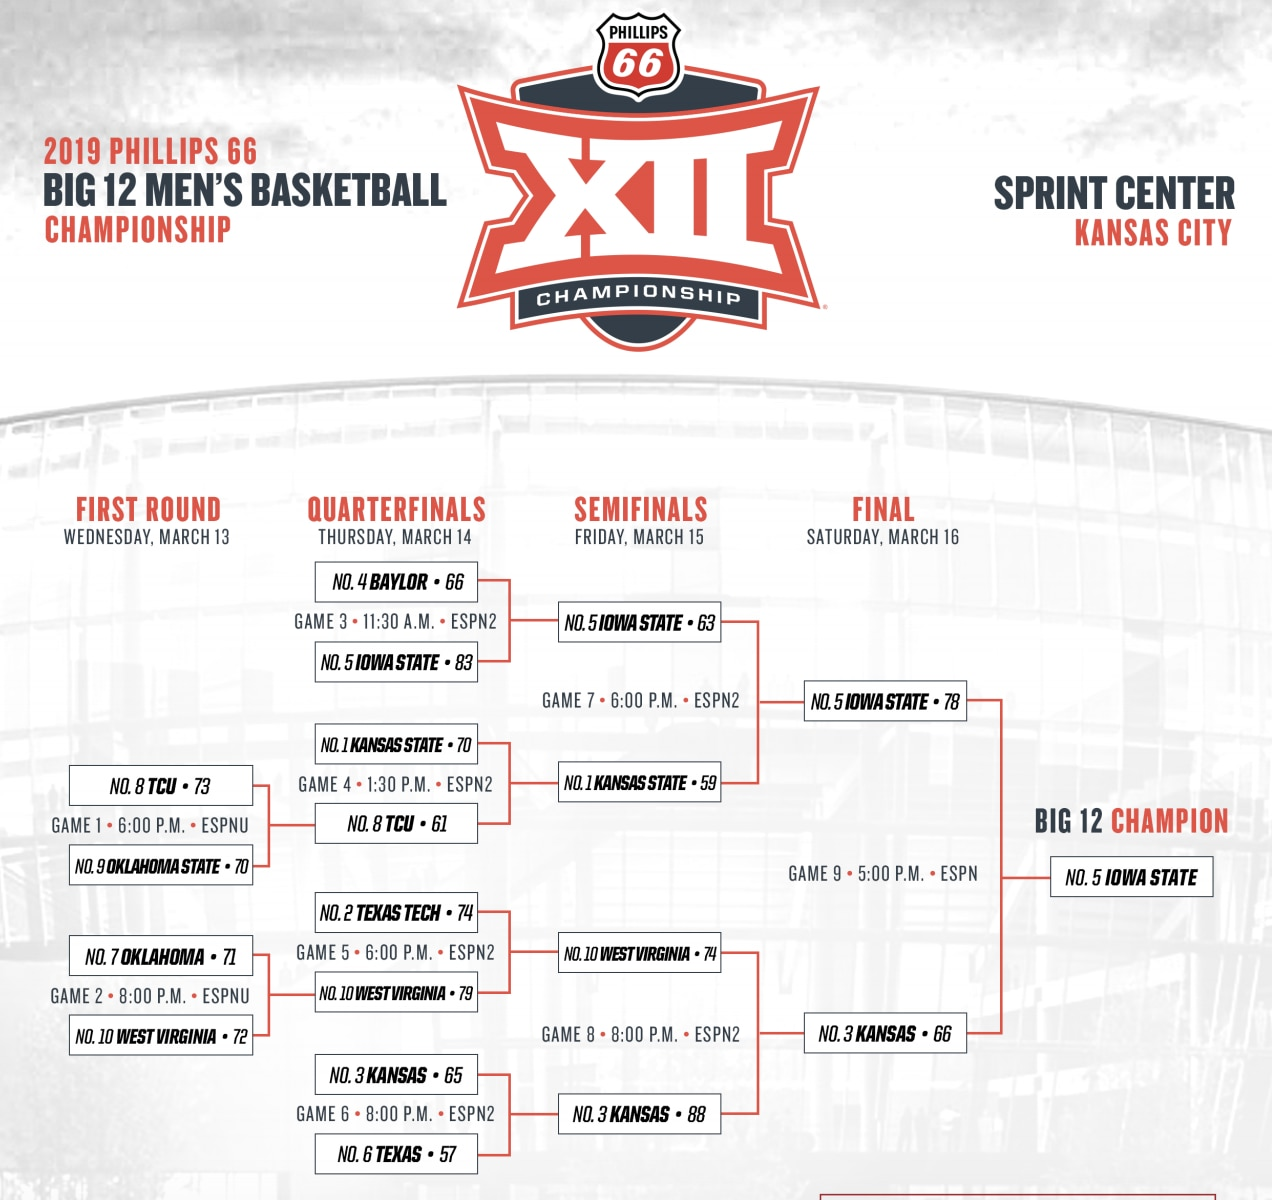 photograph about Ku Basketball Schedule Printable called 2019 Large 12 Event: Bracket, timetable, rankings, upgrades